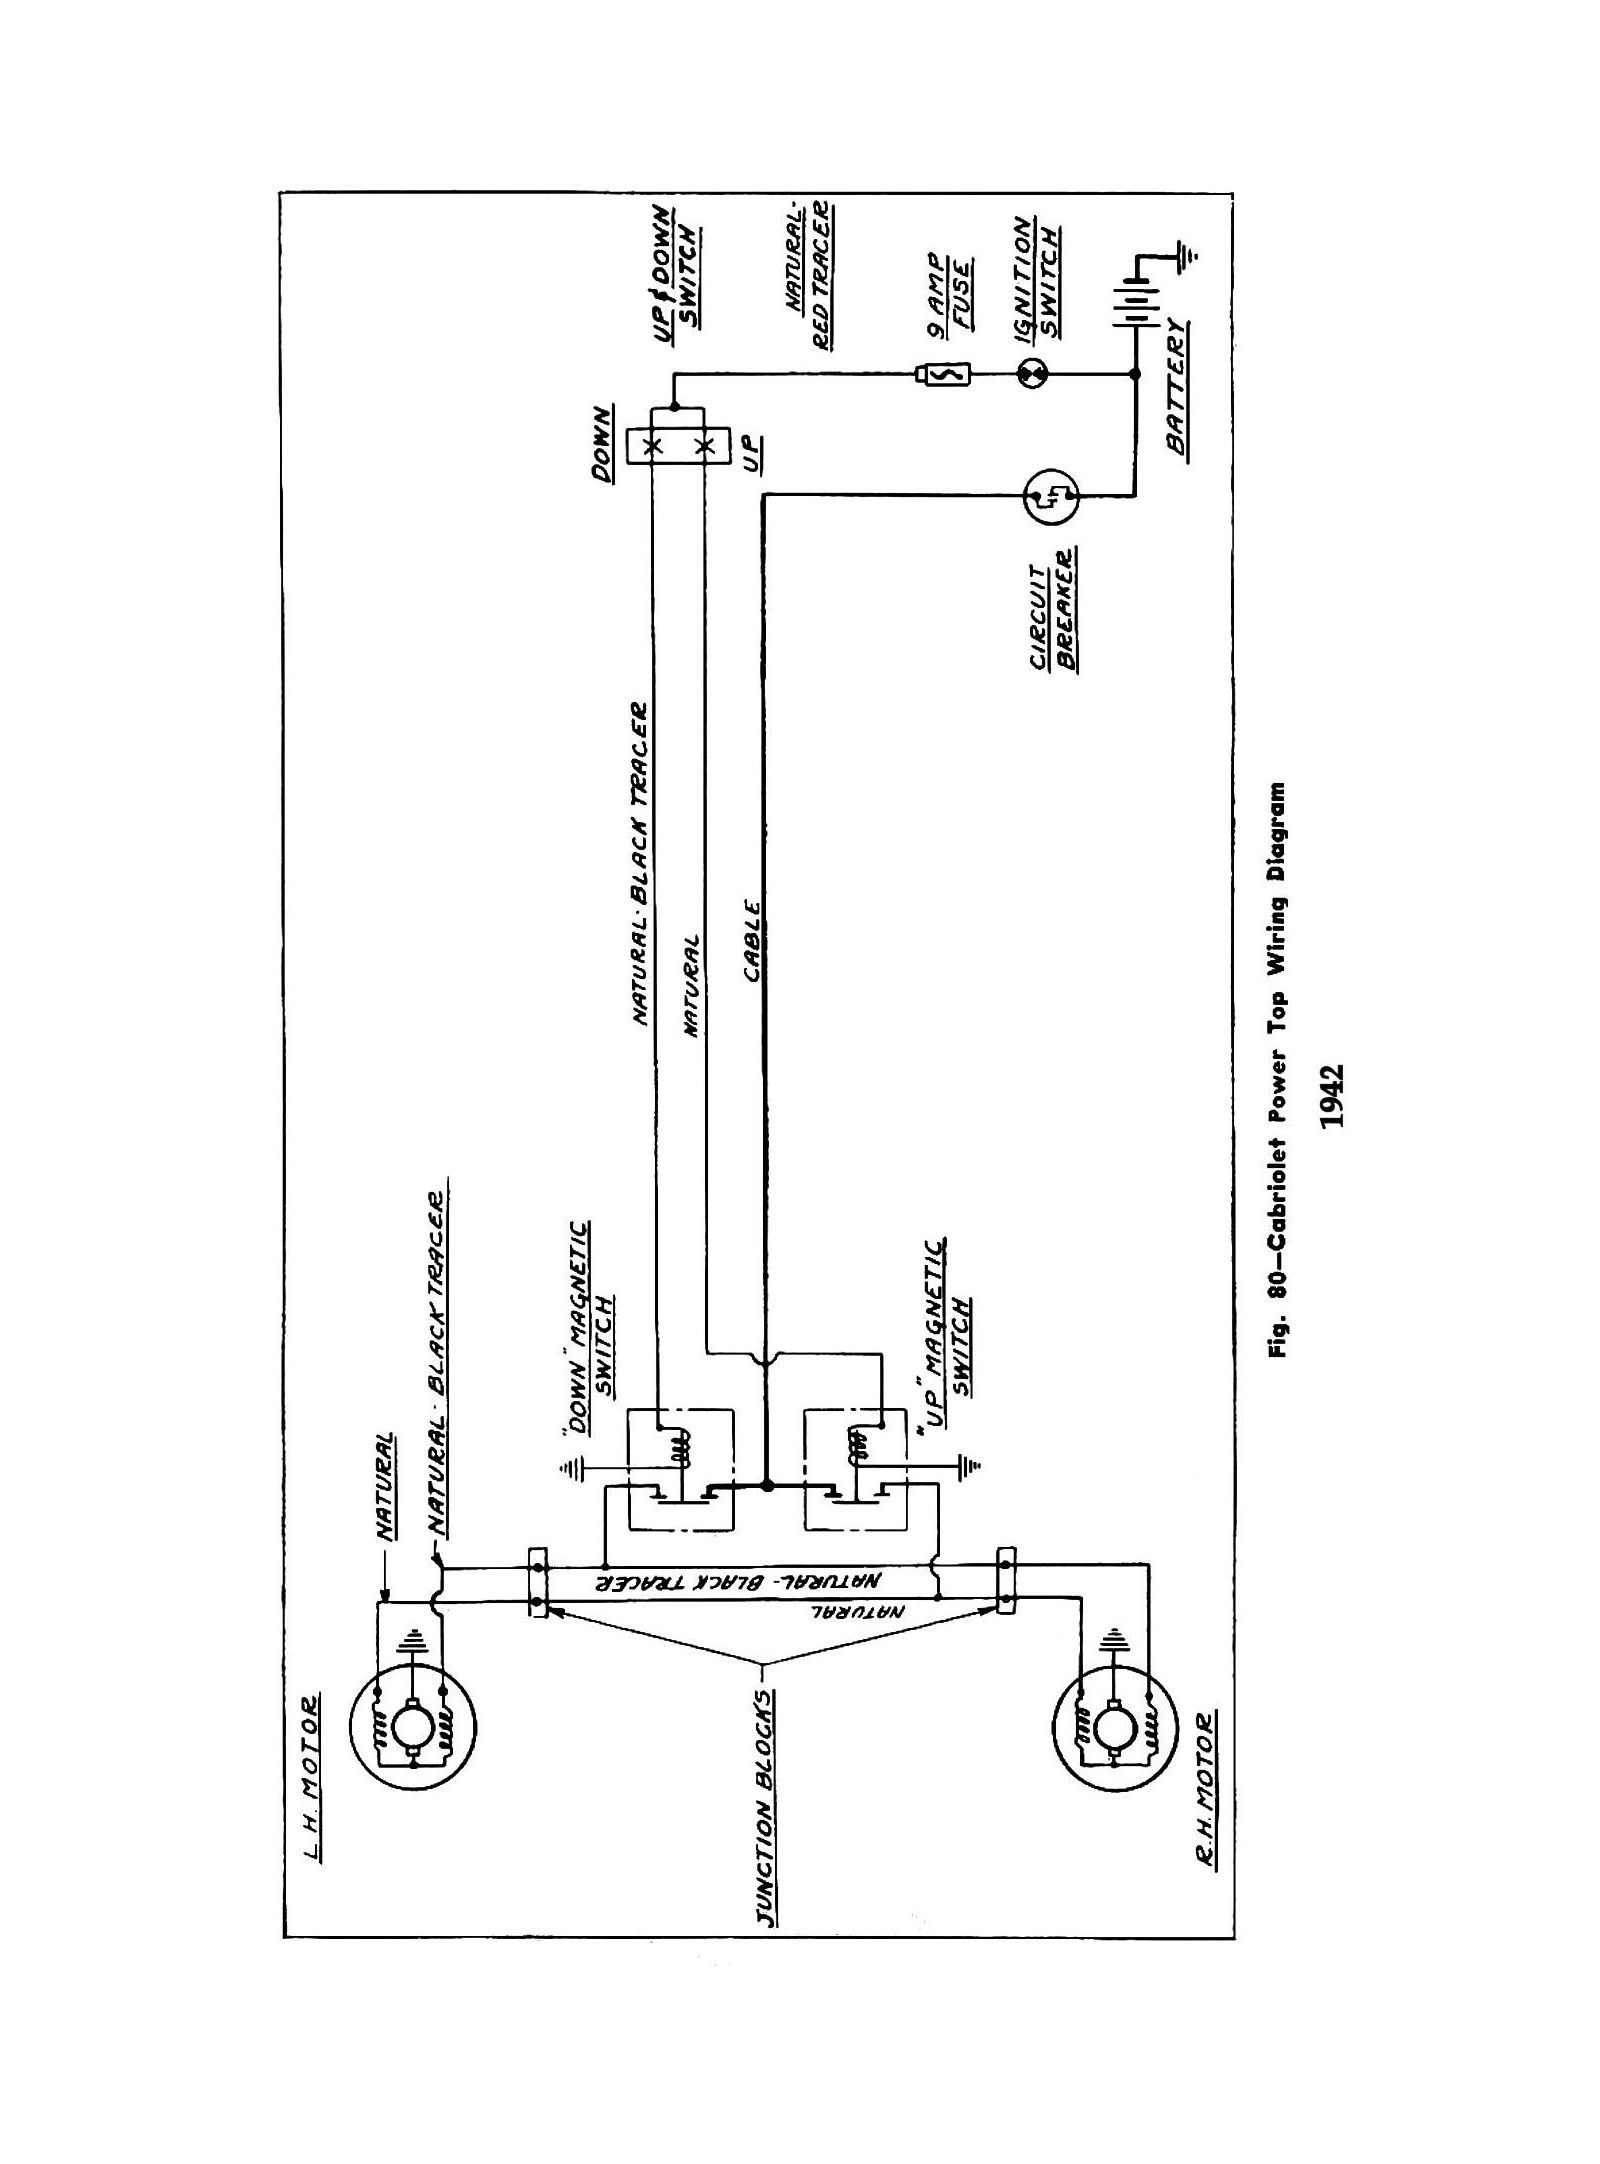 42csm1237a chevy wiring diagrams 1977 Dodge Truck Wiring Diagram at crackthecode.co